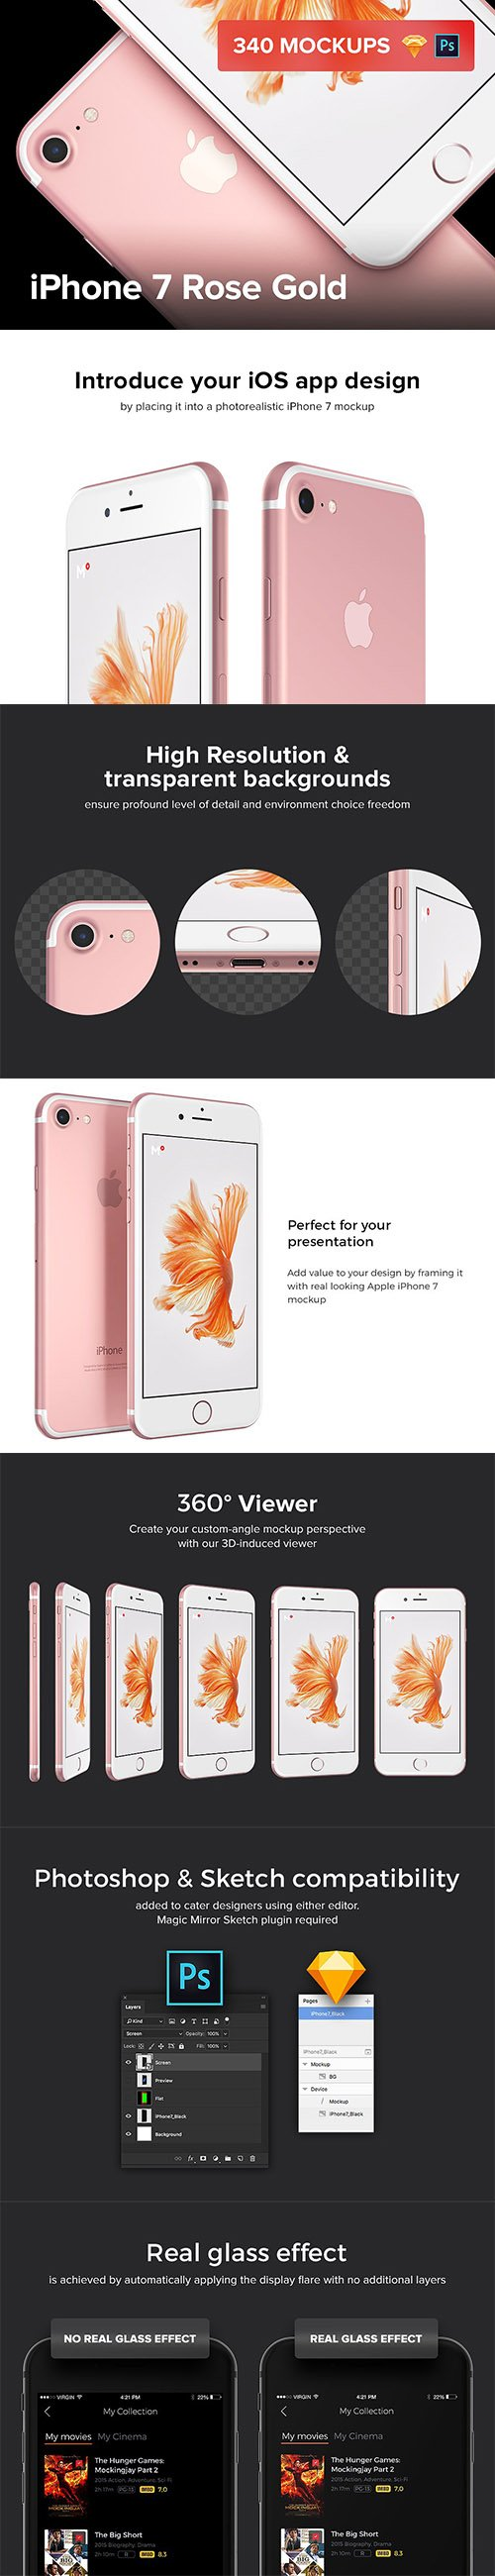 340 iPhone 7 Rose Gold mockups - CM 1247676